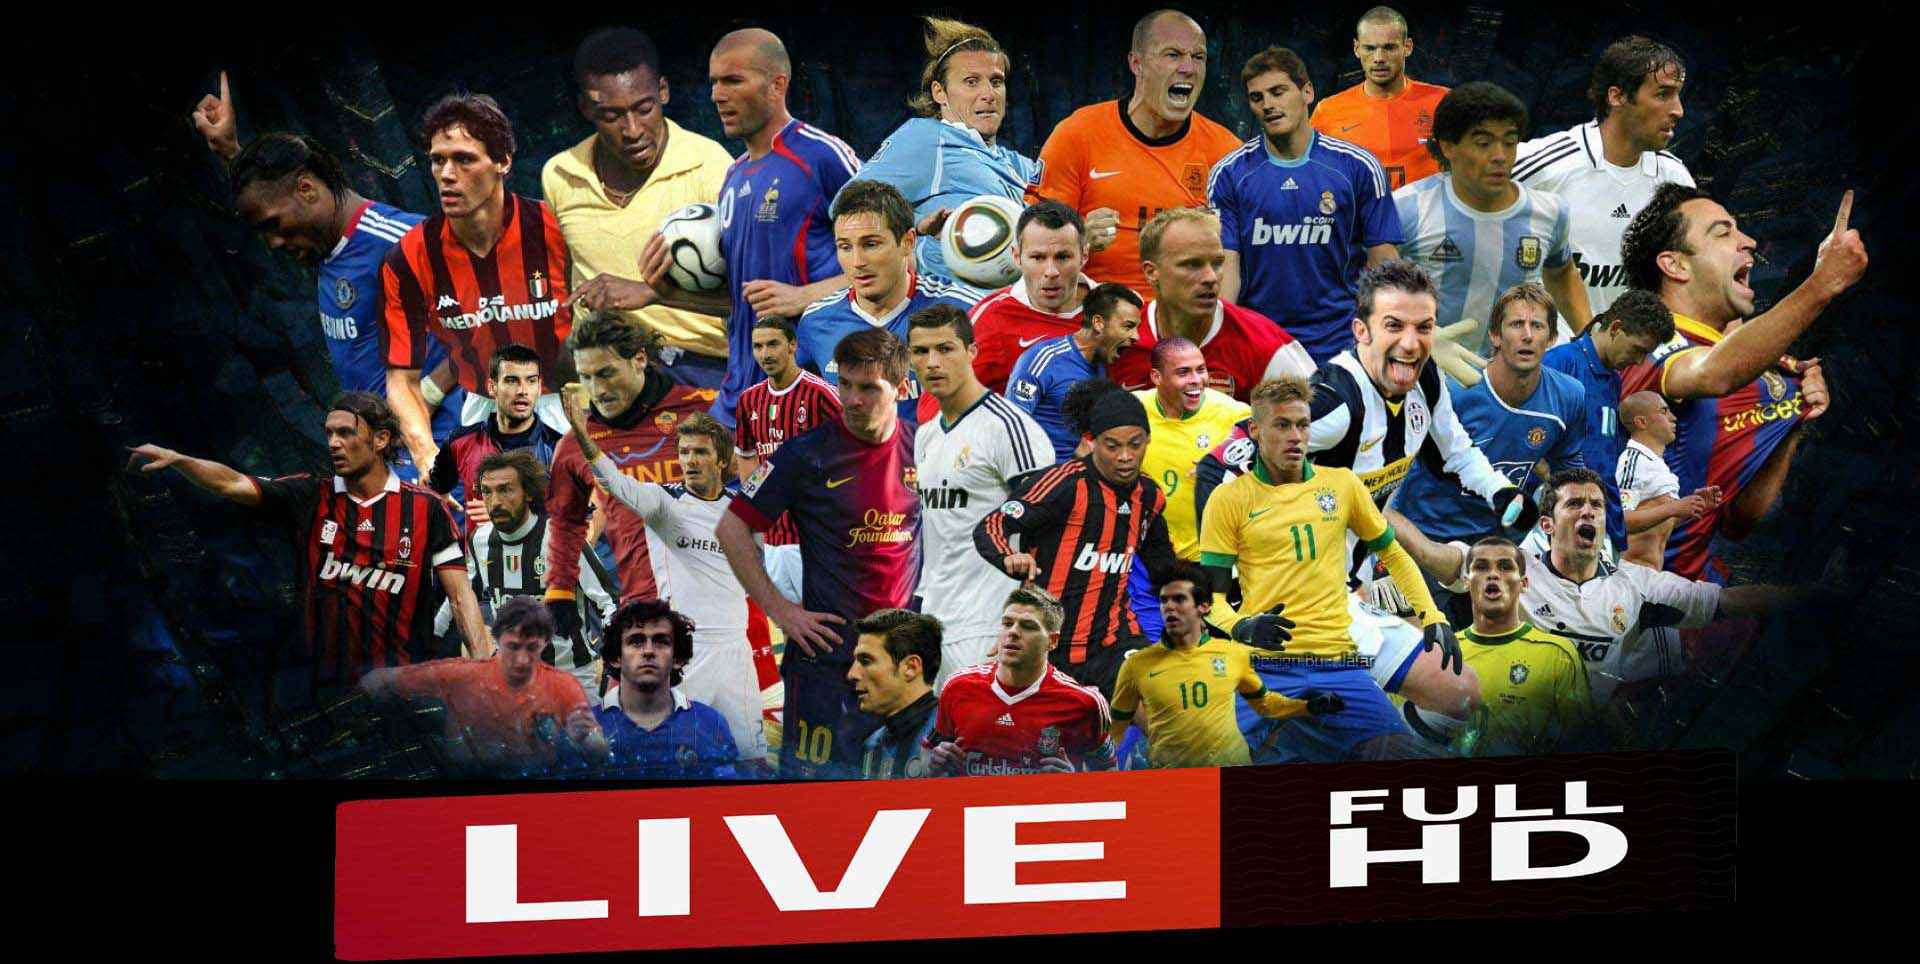 Atletico Madrid vs Bayer Leverkusen live